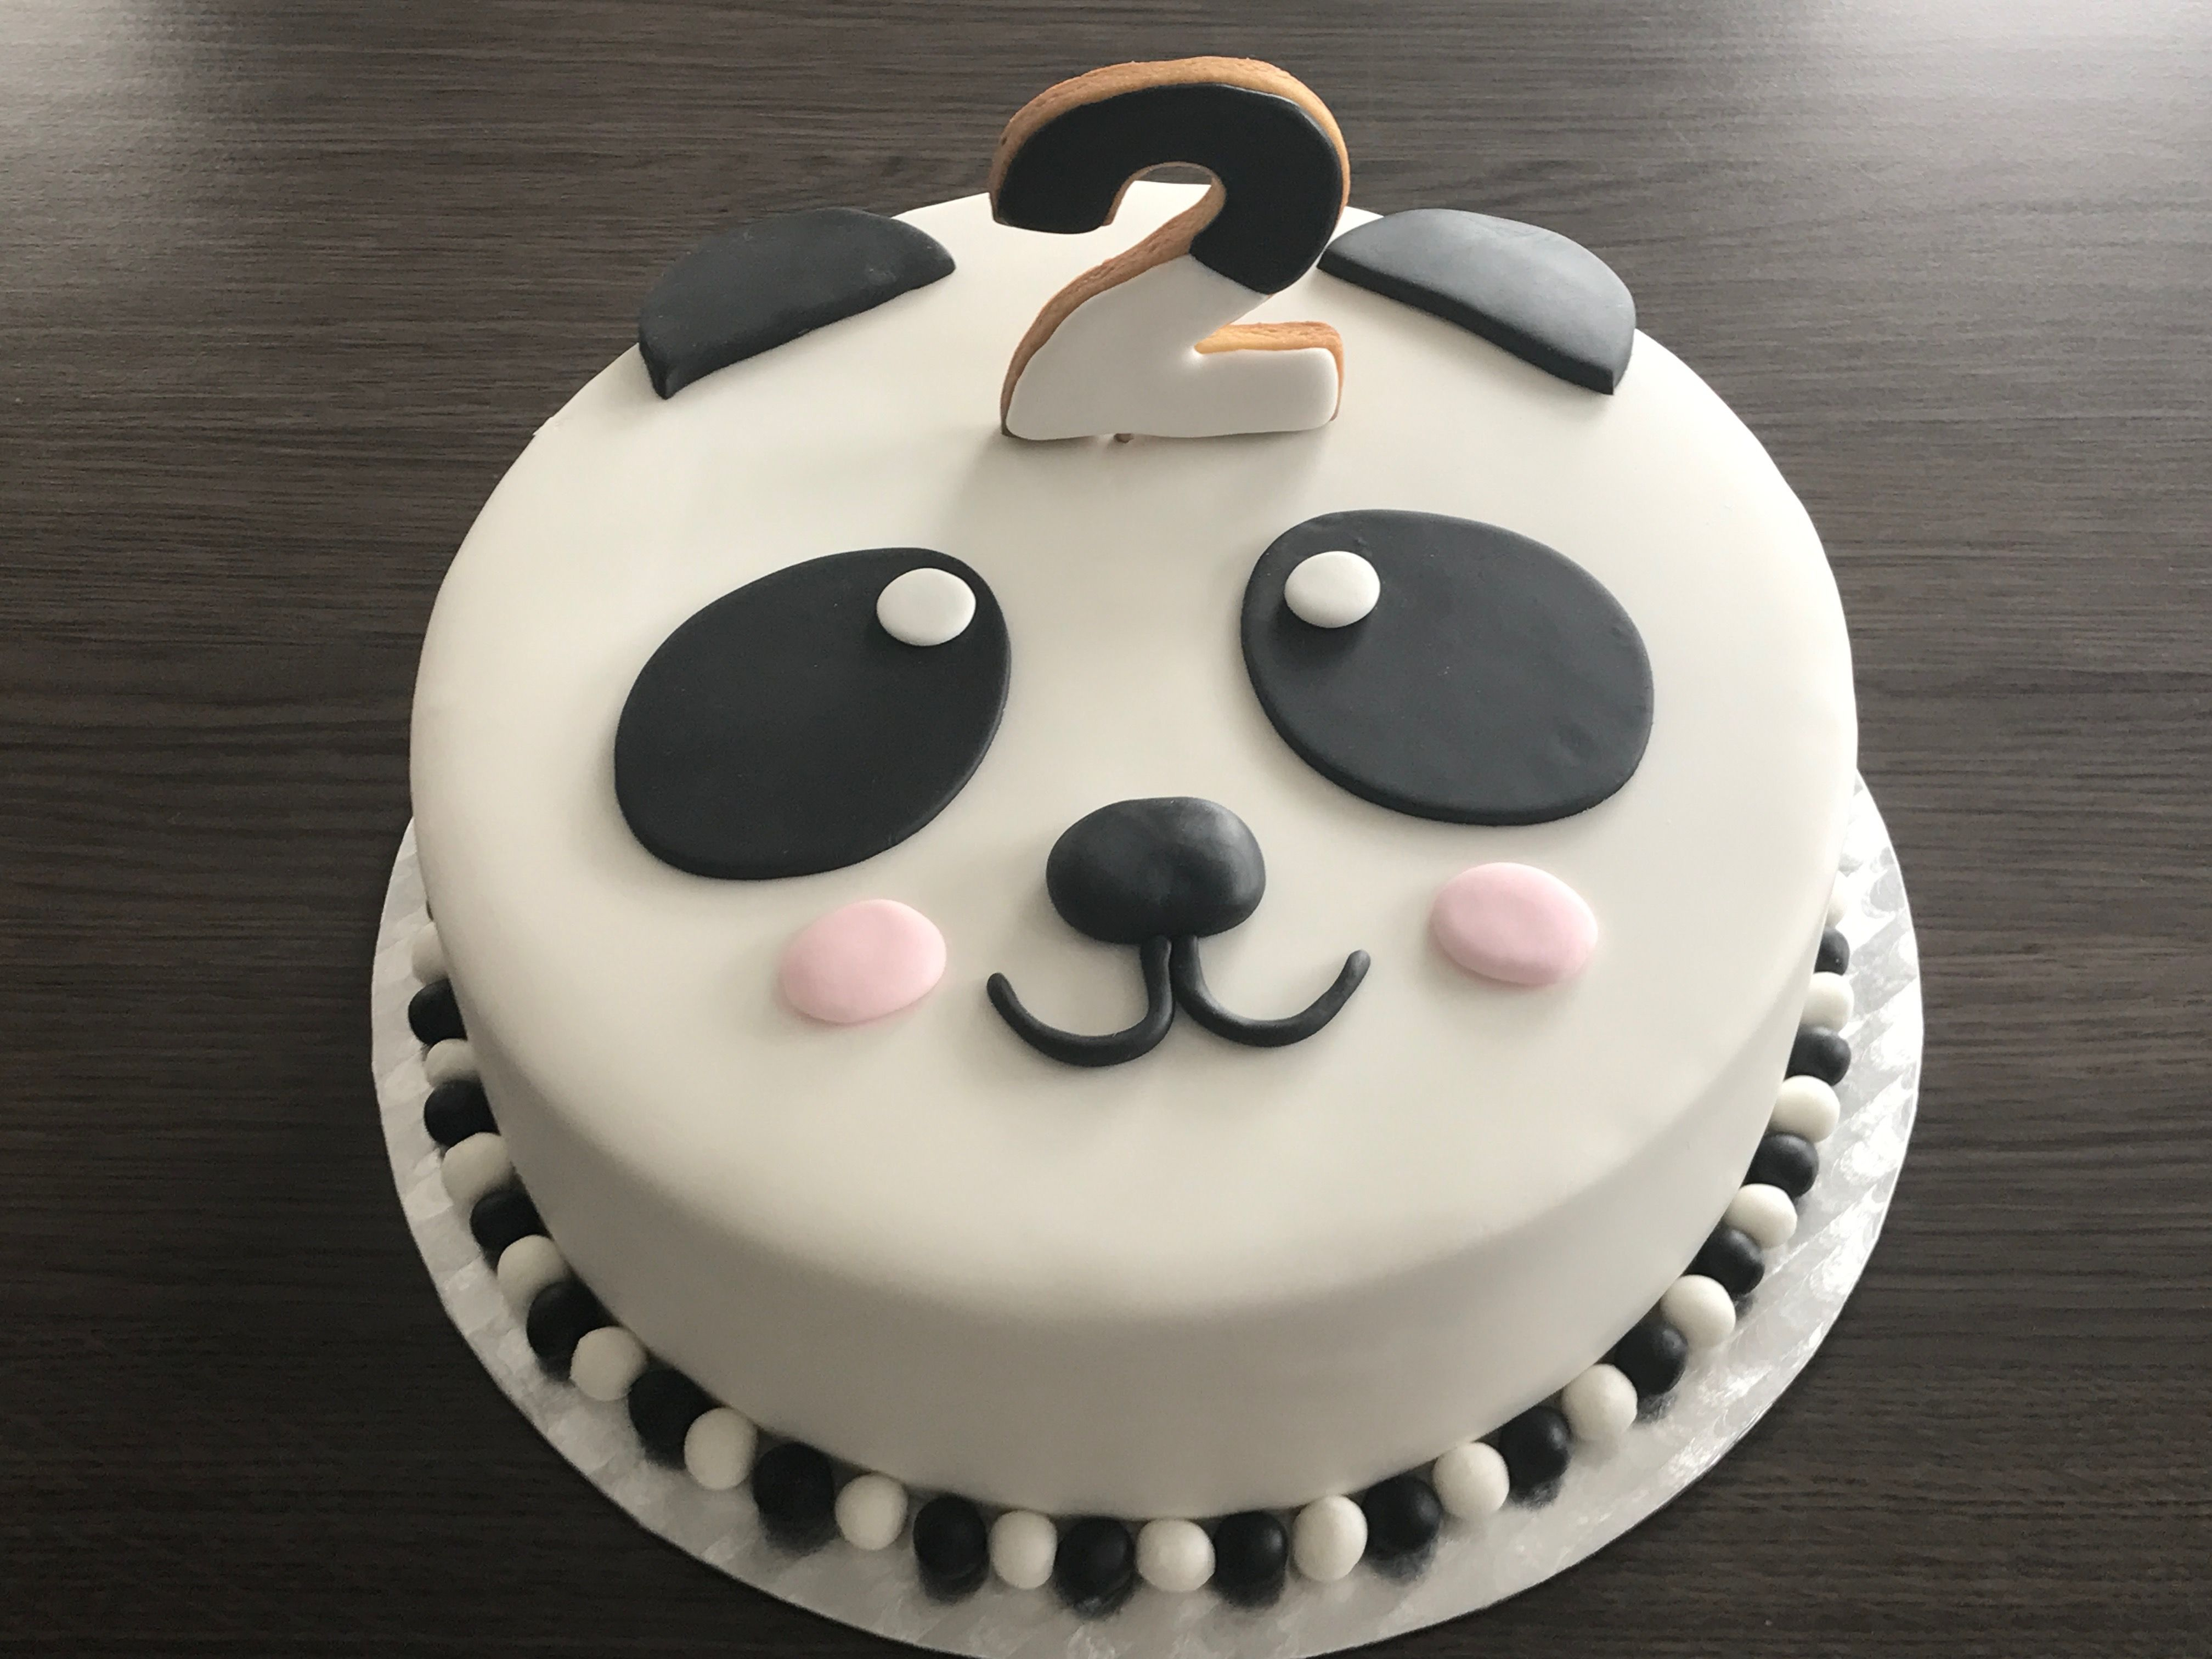 panda taart Panda taart | Panda | Pinterest | Panda, Cake and Birthdays panda taart